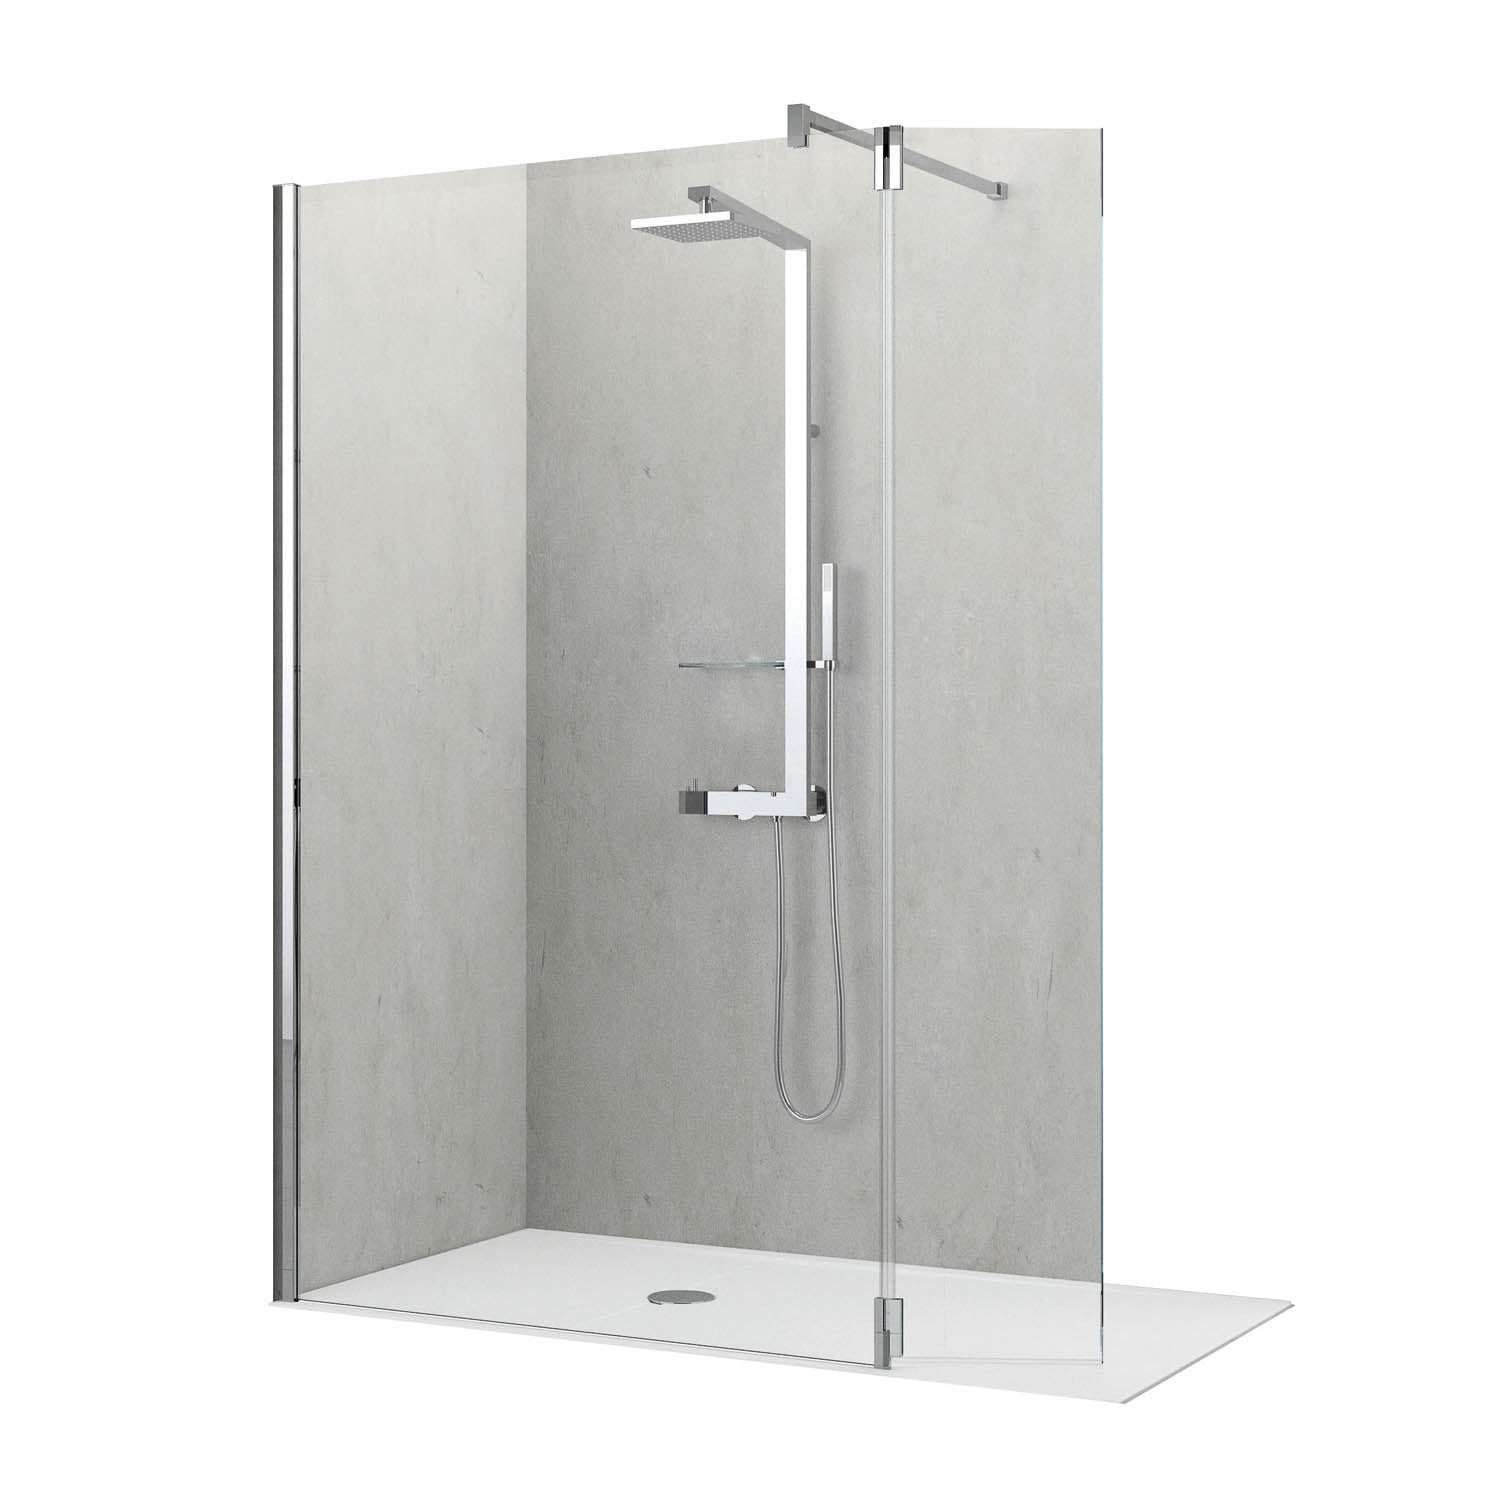 570-600mm Ergo Wet Room Screen Clear Glass with a chrome finish on a white background